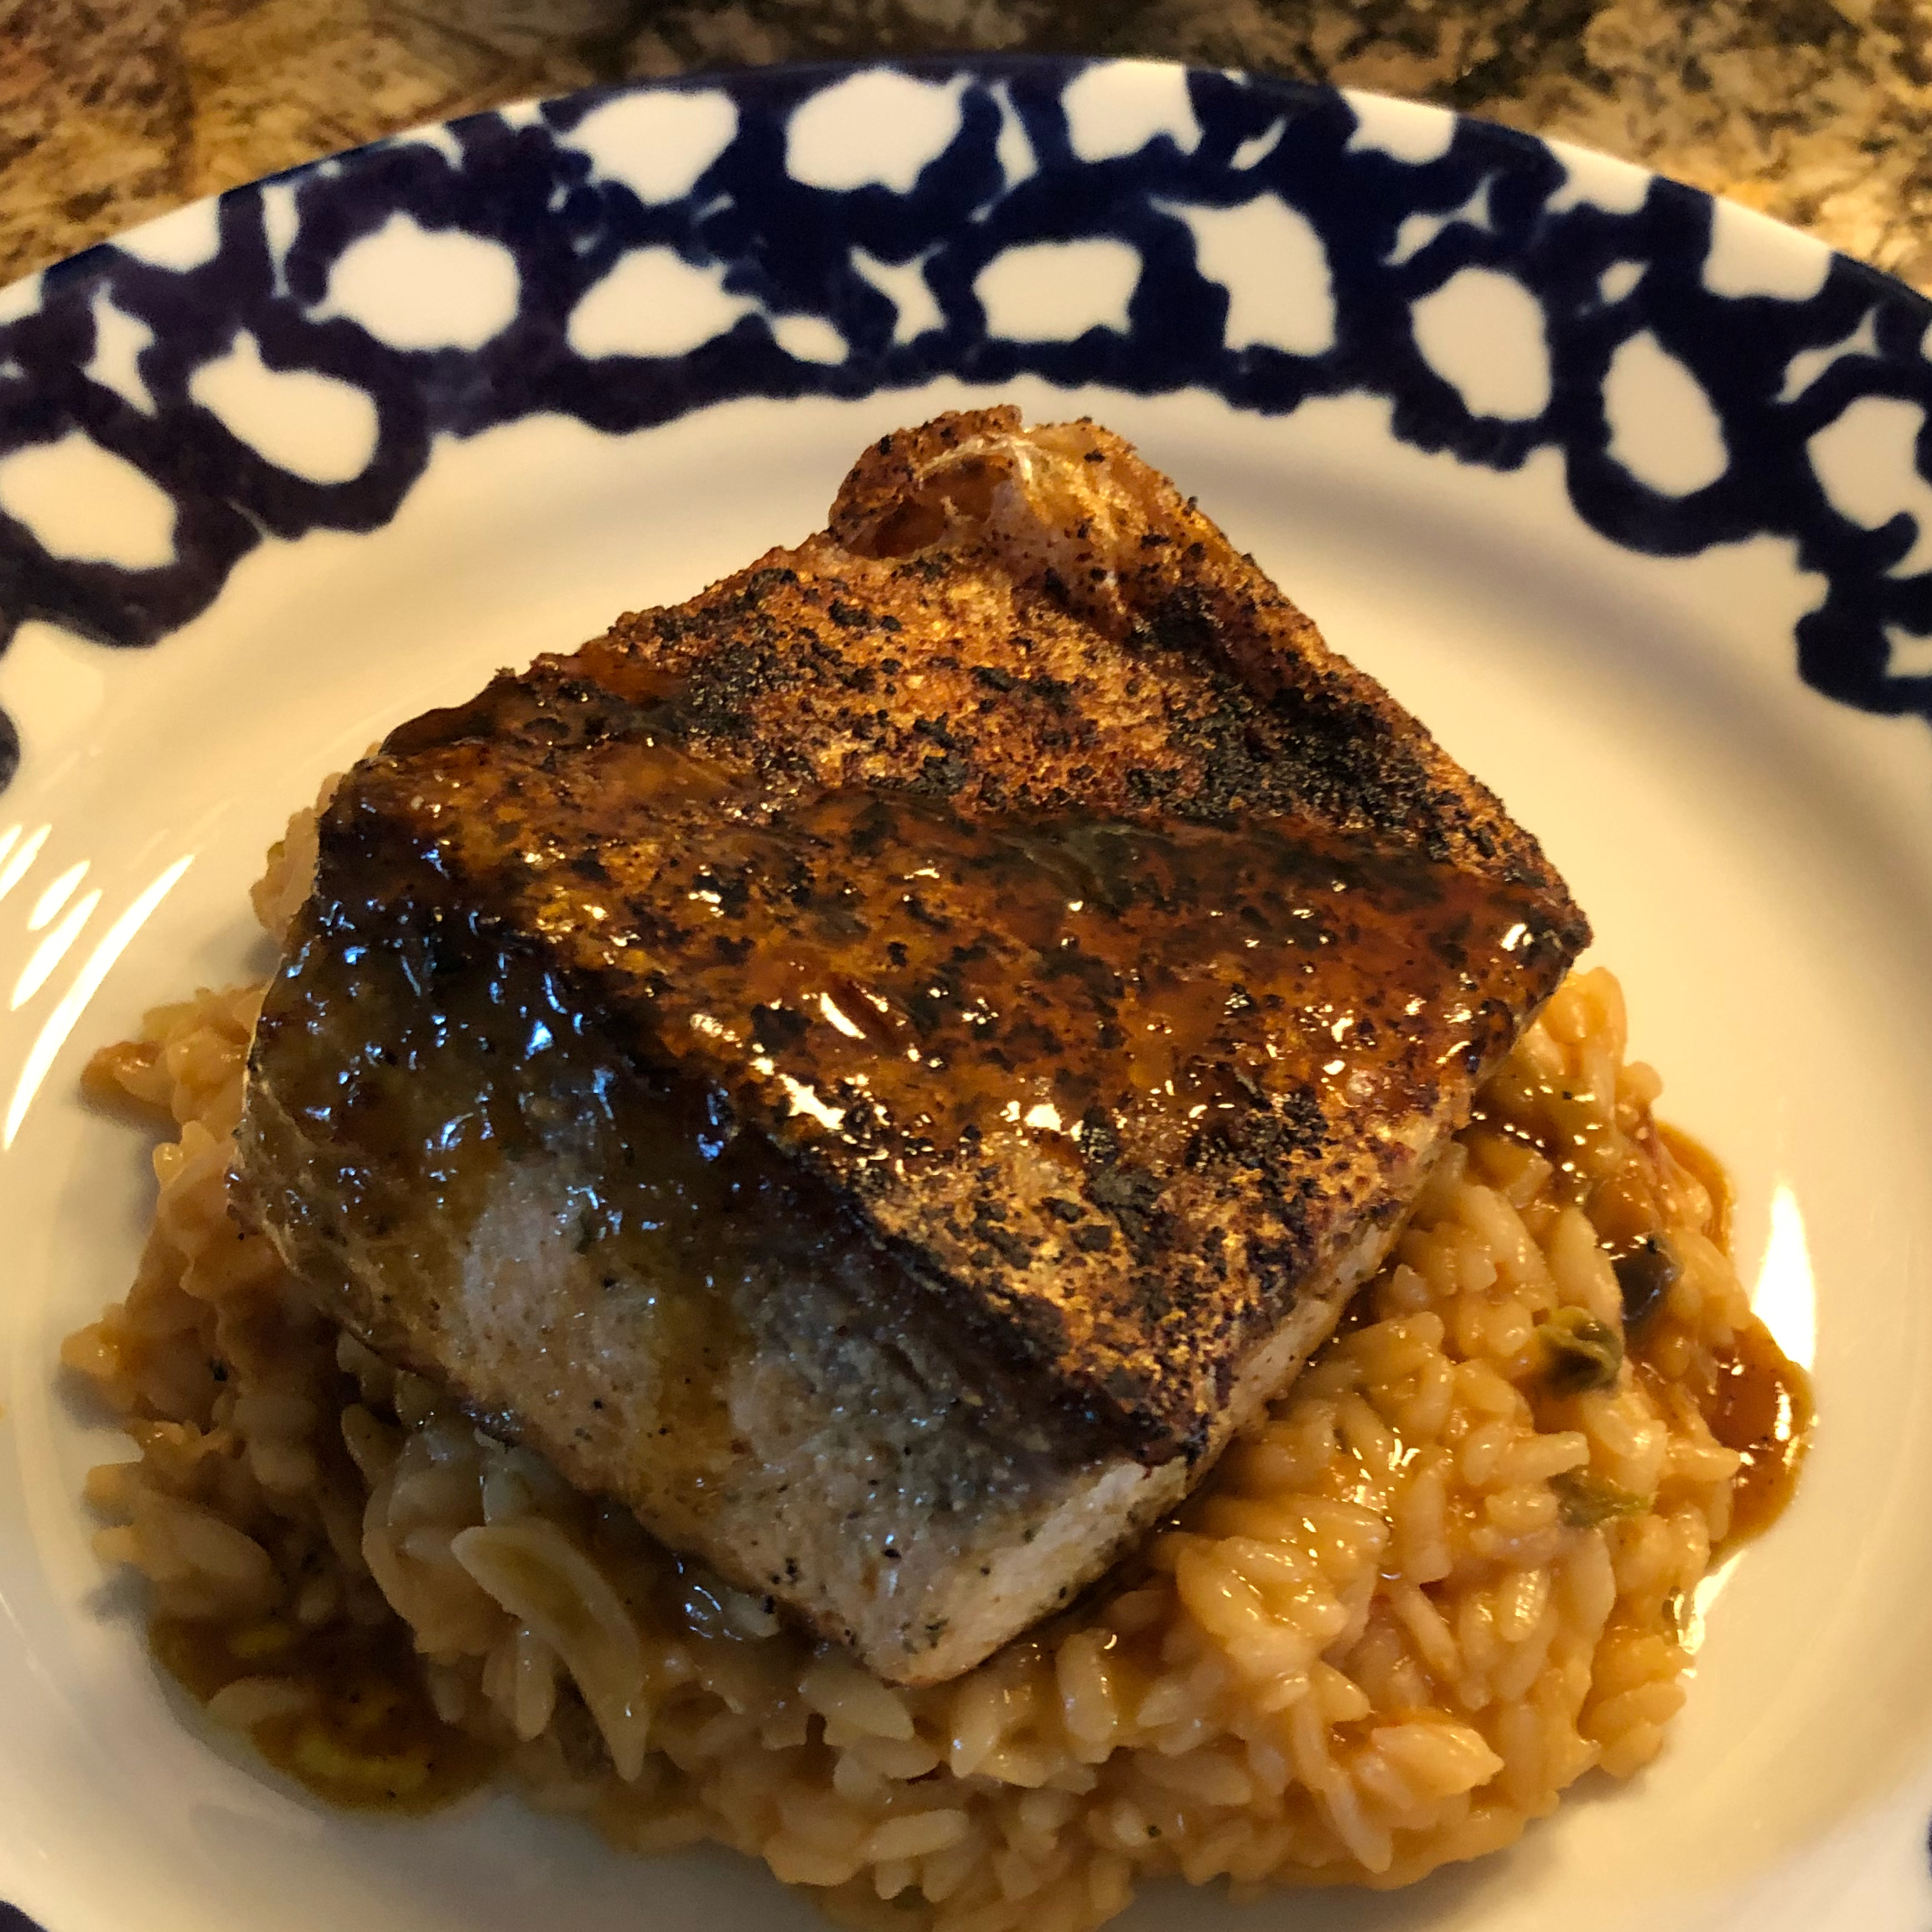 Orange Salmon with Creole Seasoning LADYZANNAH